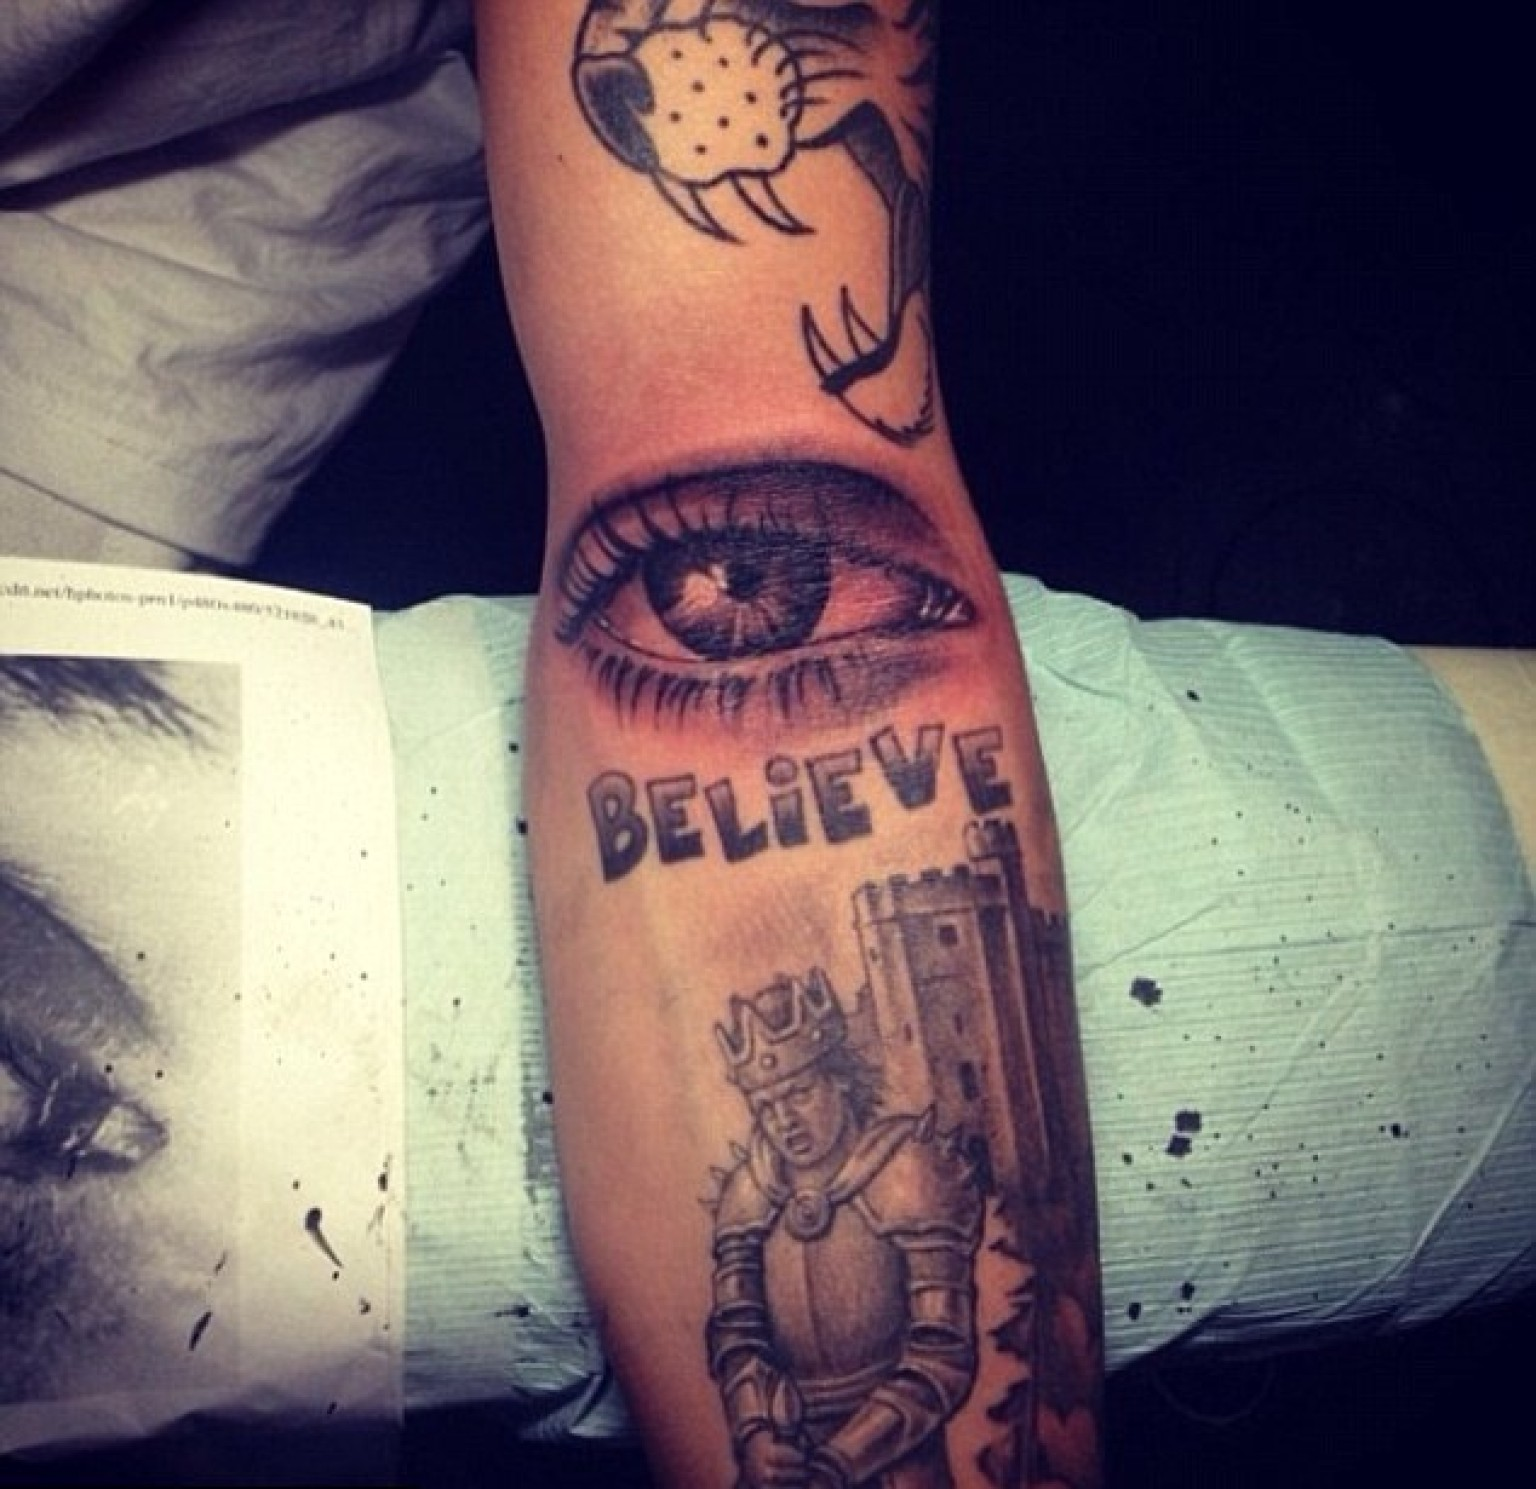 Justin Bieber's New Tattoo Is Eye-Popping (PHOTO)